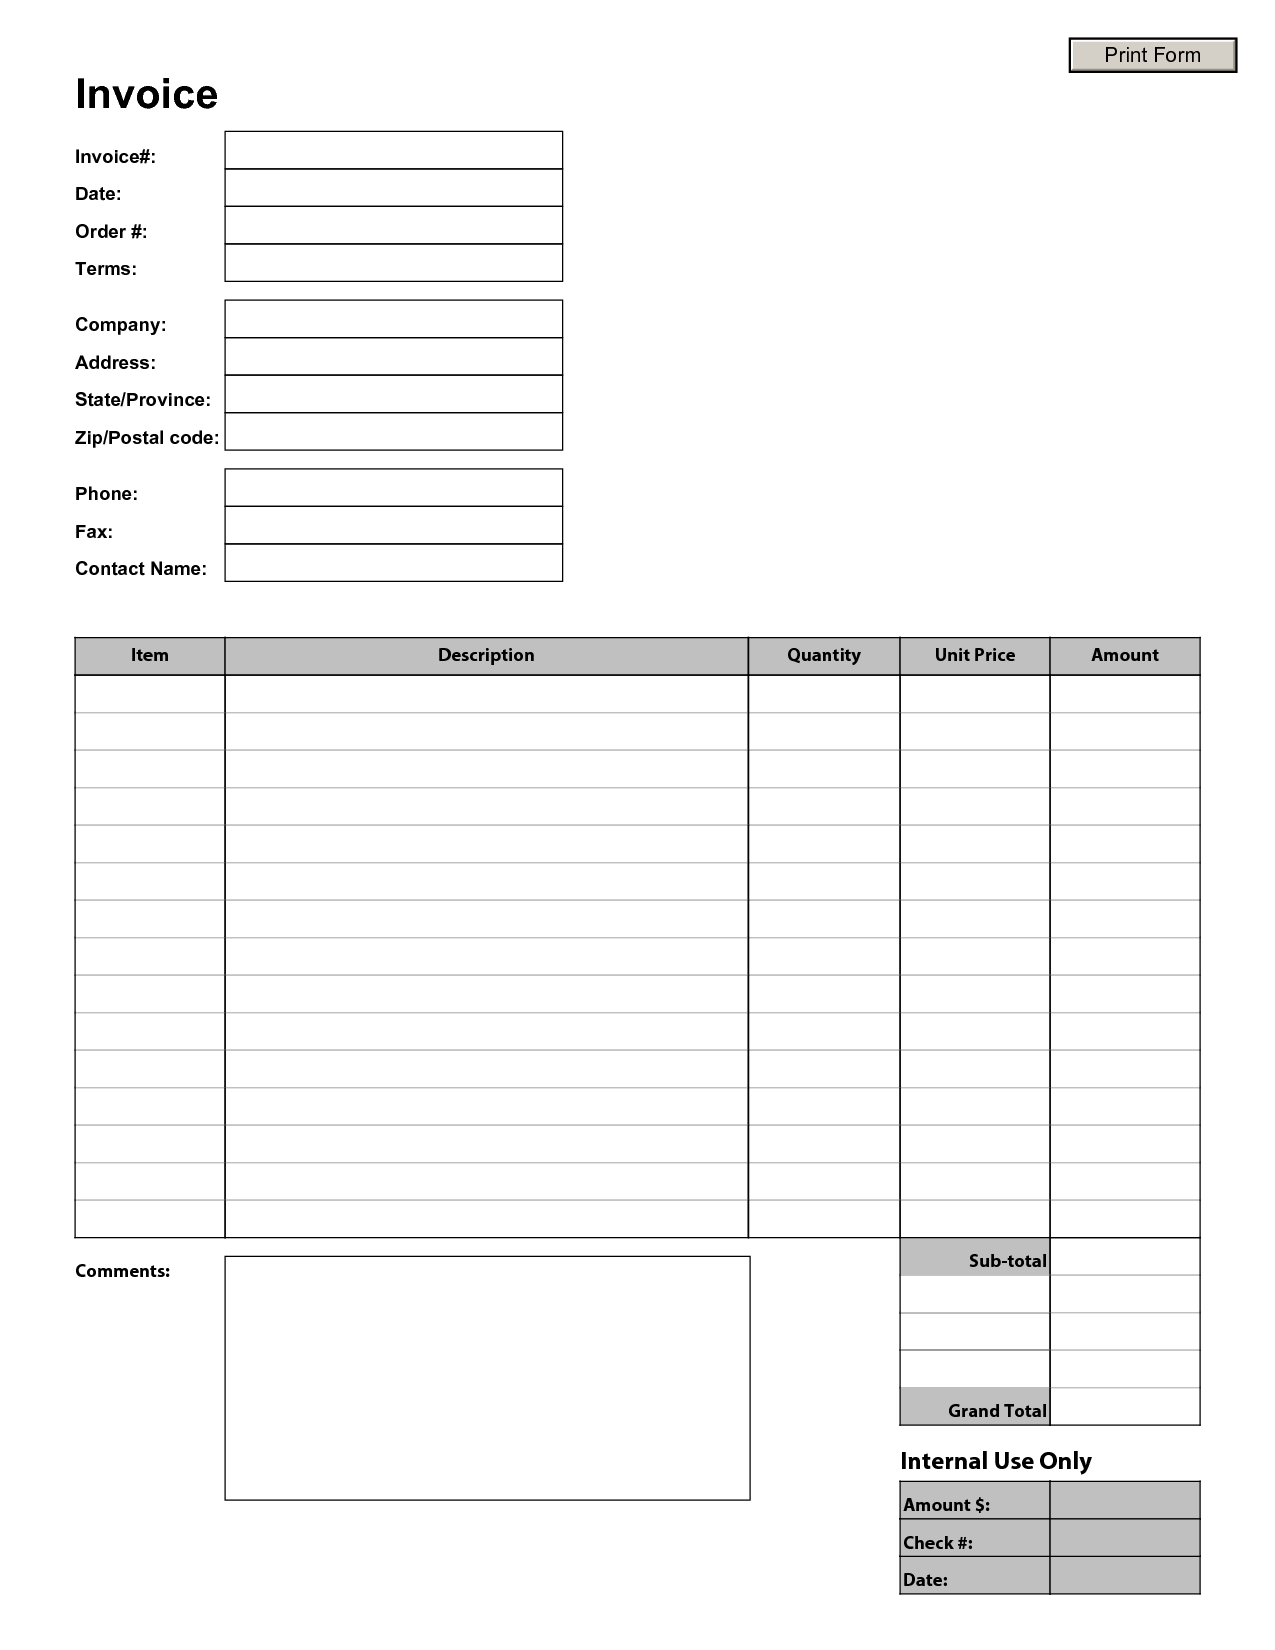 Monthly Invoice Template and Blank Invoice to Print Free to Do List